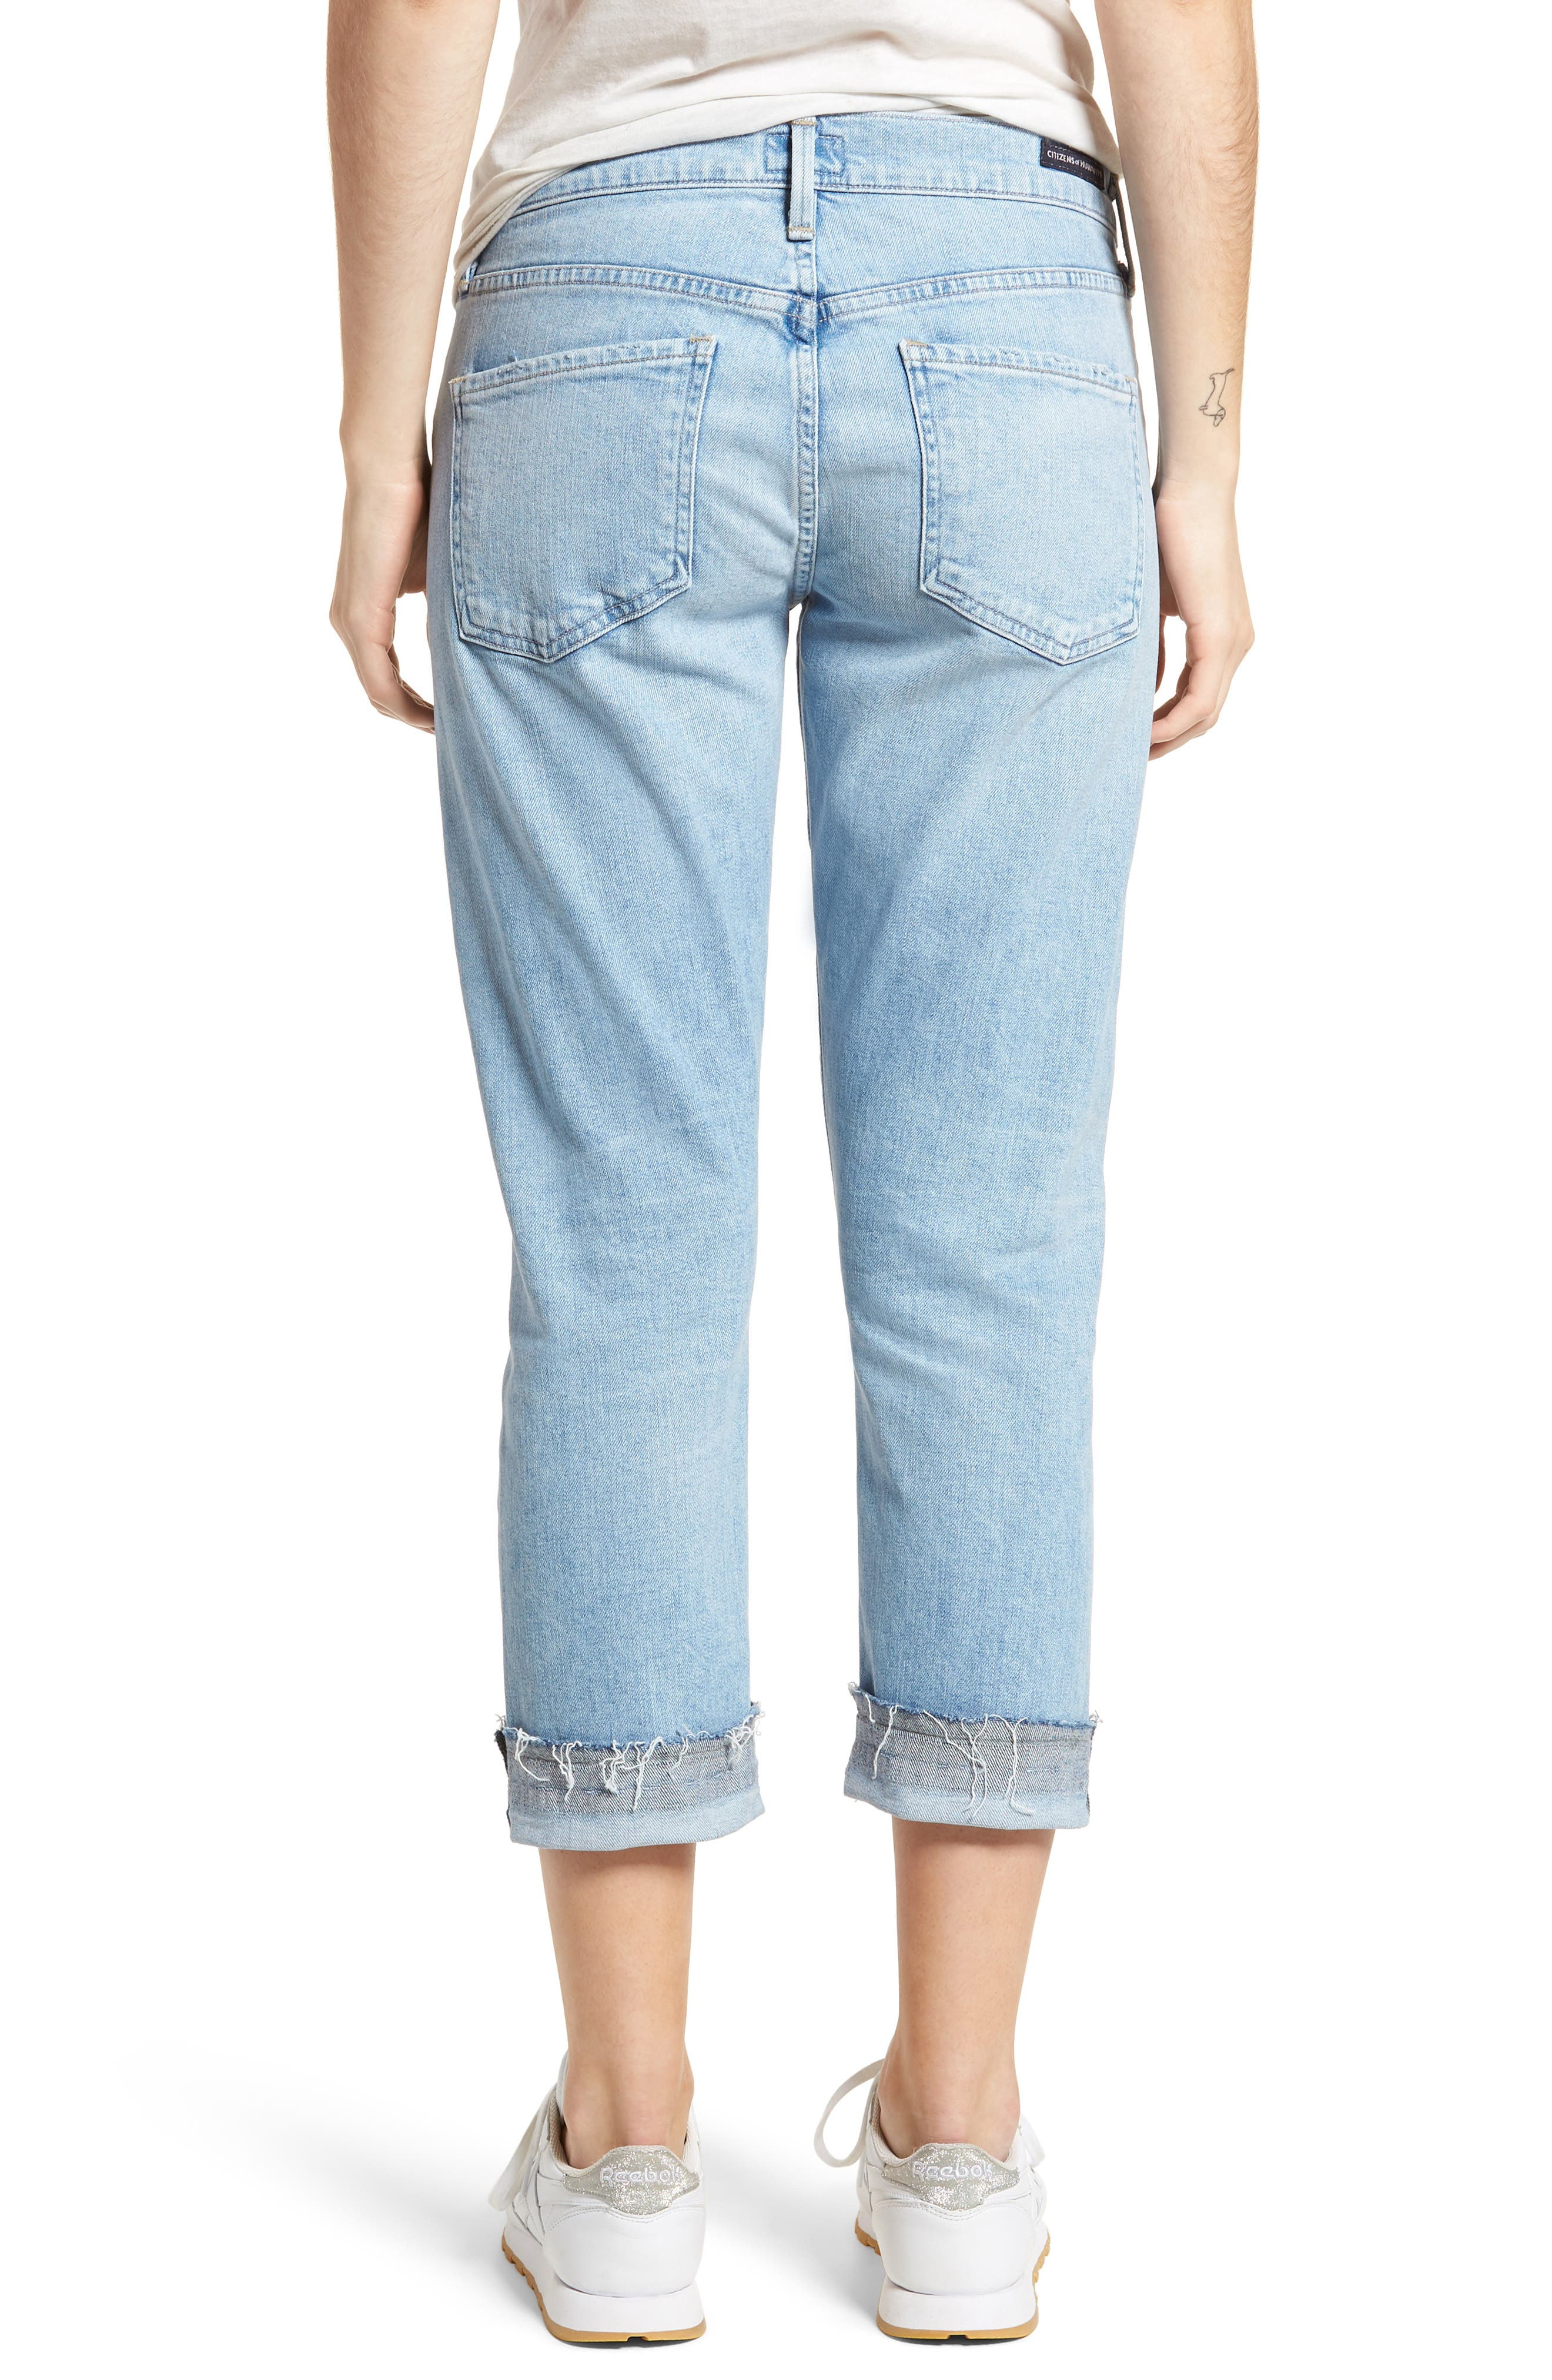 CITIZENS OF HUMANITY,                             Emerson Ripped Crop Slim Boyfriend Jeans,                             Alternate thumbnail 2, color,                             455